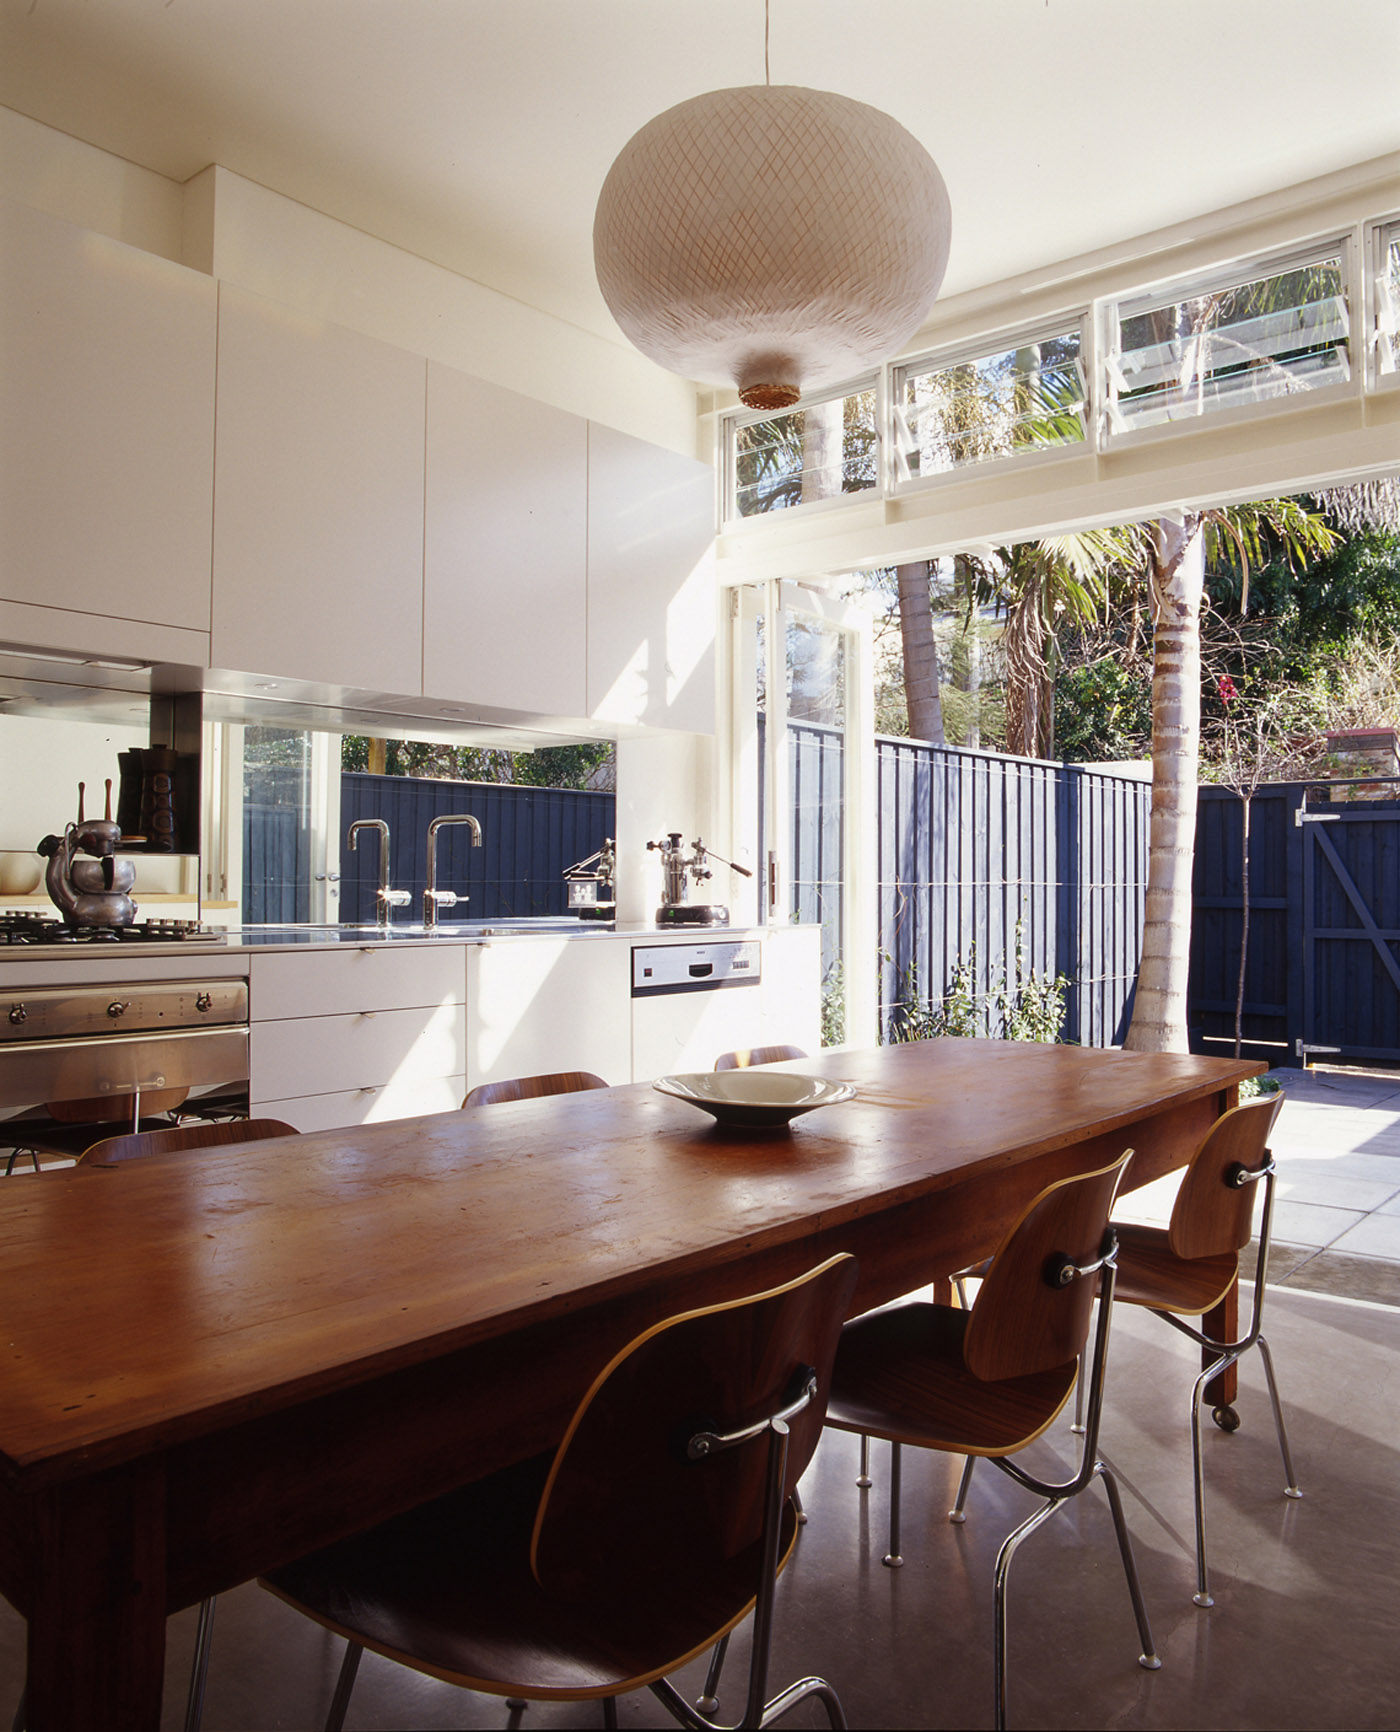 Wake Murphy House by Sydney award winning residential architecture office Sam Crawford Architects. Dining area adjacent to kitchen unit